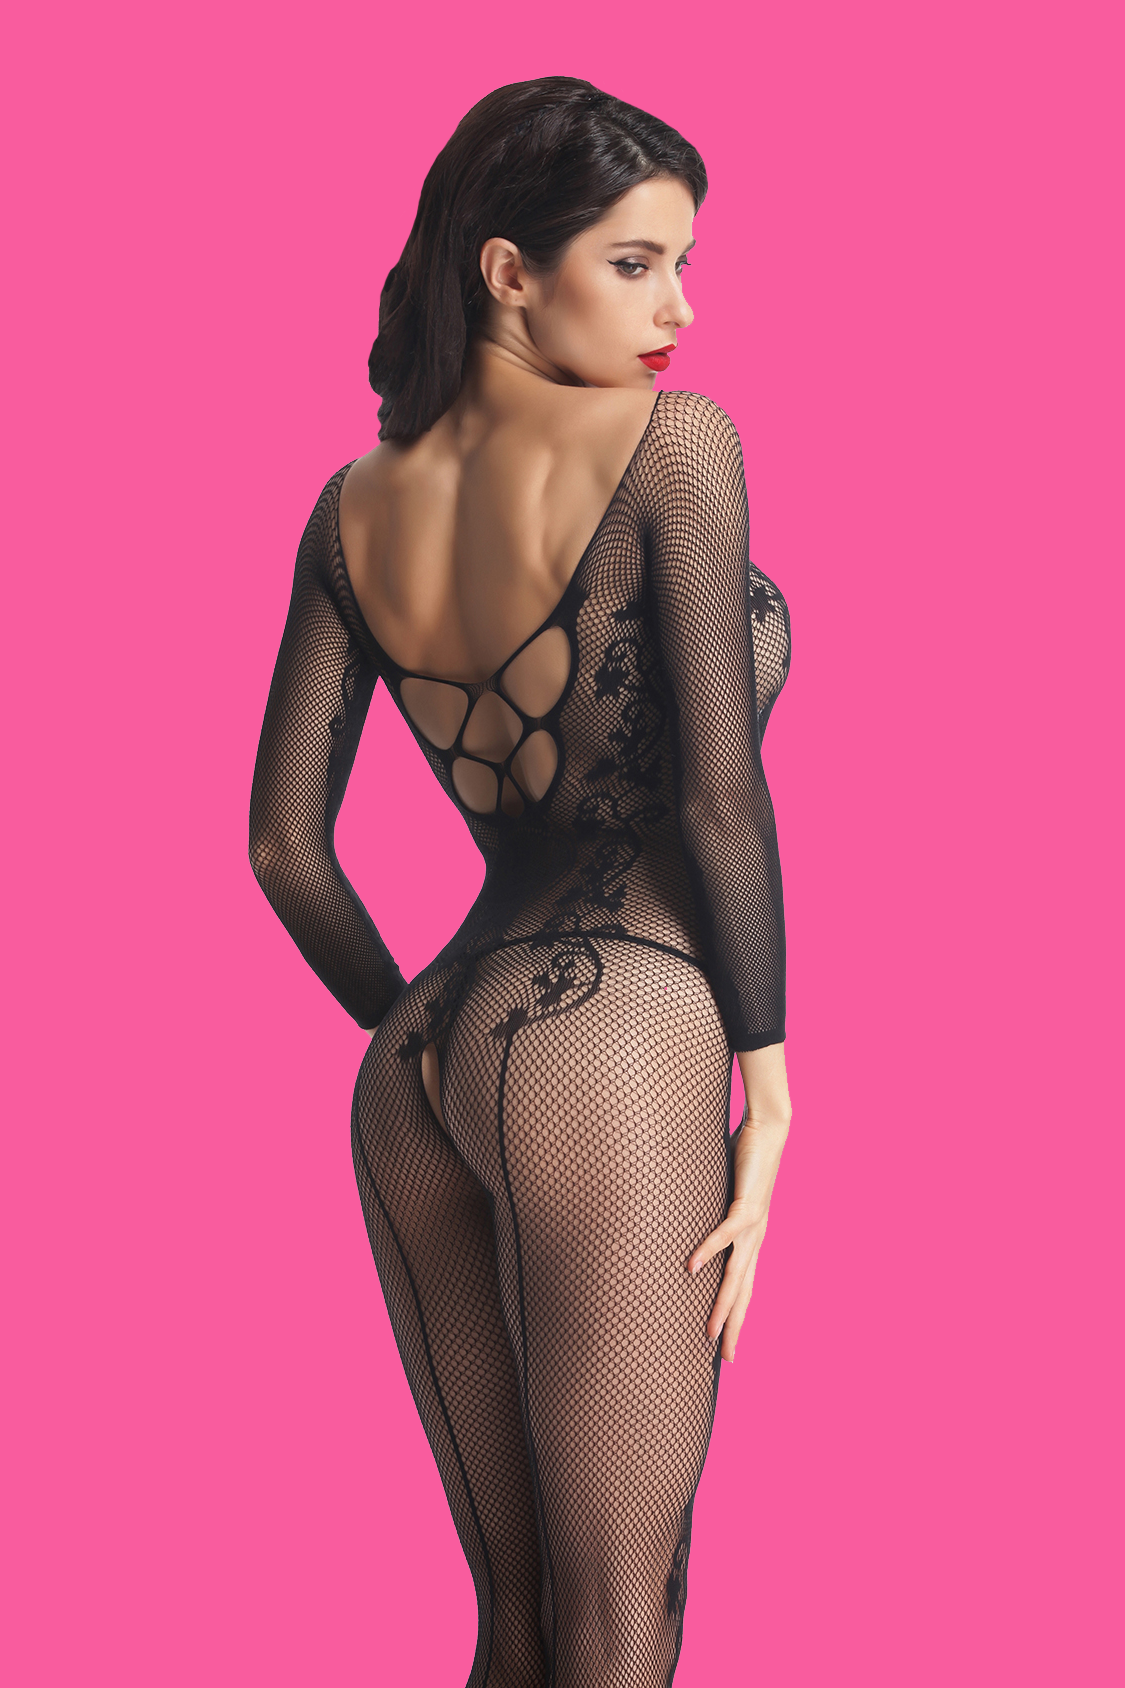 This #bodystocking comes with A stretchy revealing shape in beautiful floral lace, which shows off in a deep plunge front and daringly low-cut back with lots of straps. It makes women not only sexy but also comfortable. Repin for More.